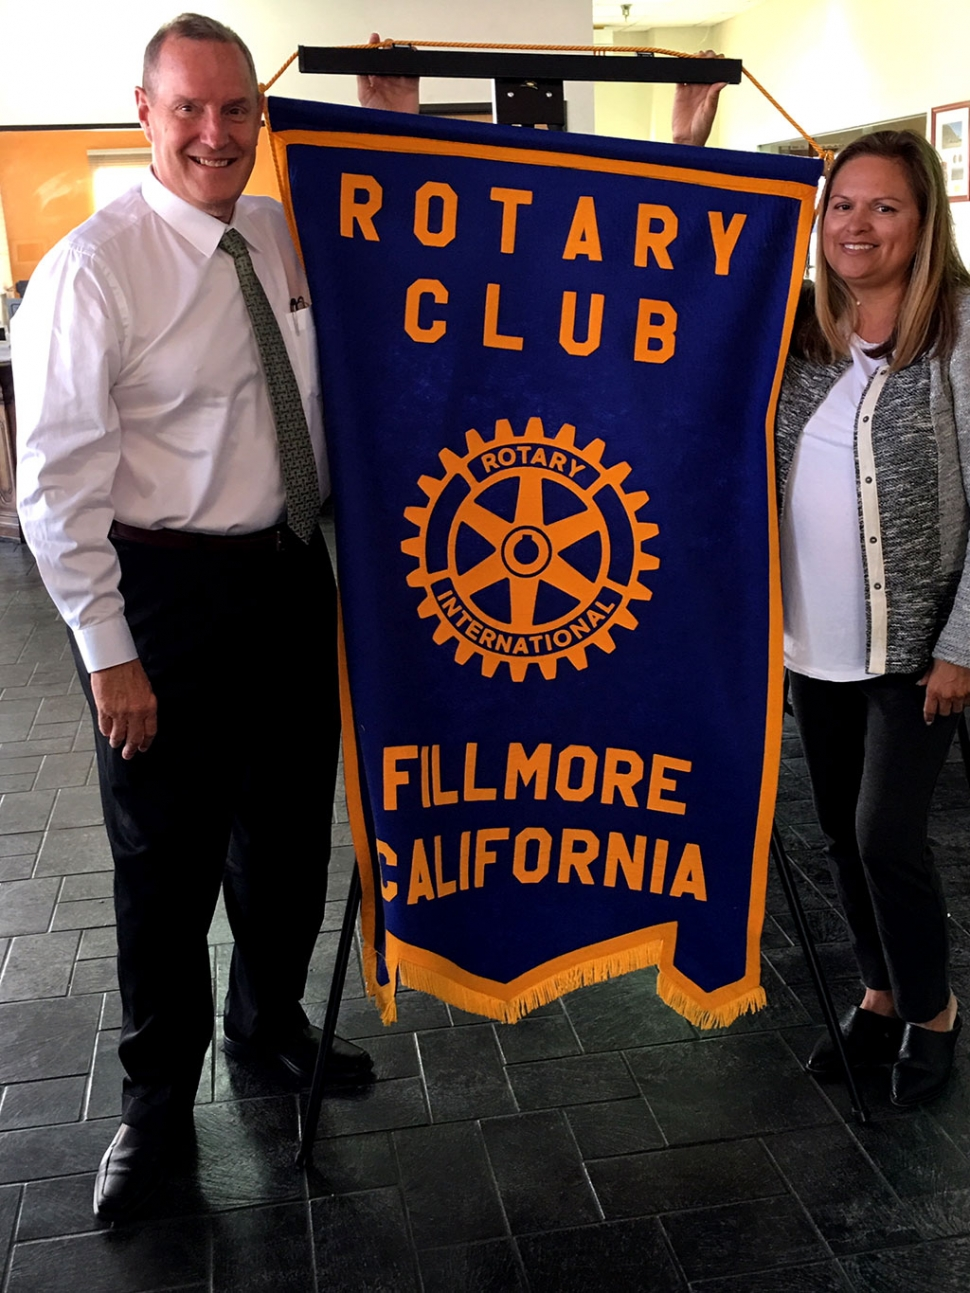 Pictured is Rotary President Ari Larson with Rotarian Kyle Wilson who presented to the Club. Kyle joined Rotary in 2005, has been President twice, International Chair many times, and is now Foundation Chair. He has received many awards for his Rotary service over the years. His program was on the Rotary Foundation. This Foundation is a fundraiser that disperses Rotary monies for projects around the world. Polio Eradication has been a major one starting in the 80's. Teams of Rotarians have gone to countries around the world to administer the vaccine to children. Today there are only 2-3 countries with polio. Here in Fillmore our Josh the Otter water safety project received money from the Foundation. Our Club/members donate to the Permanent Fund and to PolioPlus, and a percentage of this money comes back to the Club every three years for our projects. This is one of the ways we can support our community, schools, and people of other countries. Photo Courtesy Martha Richardson.